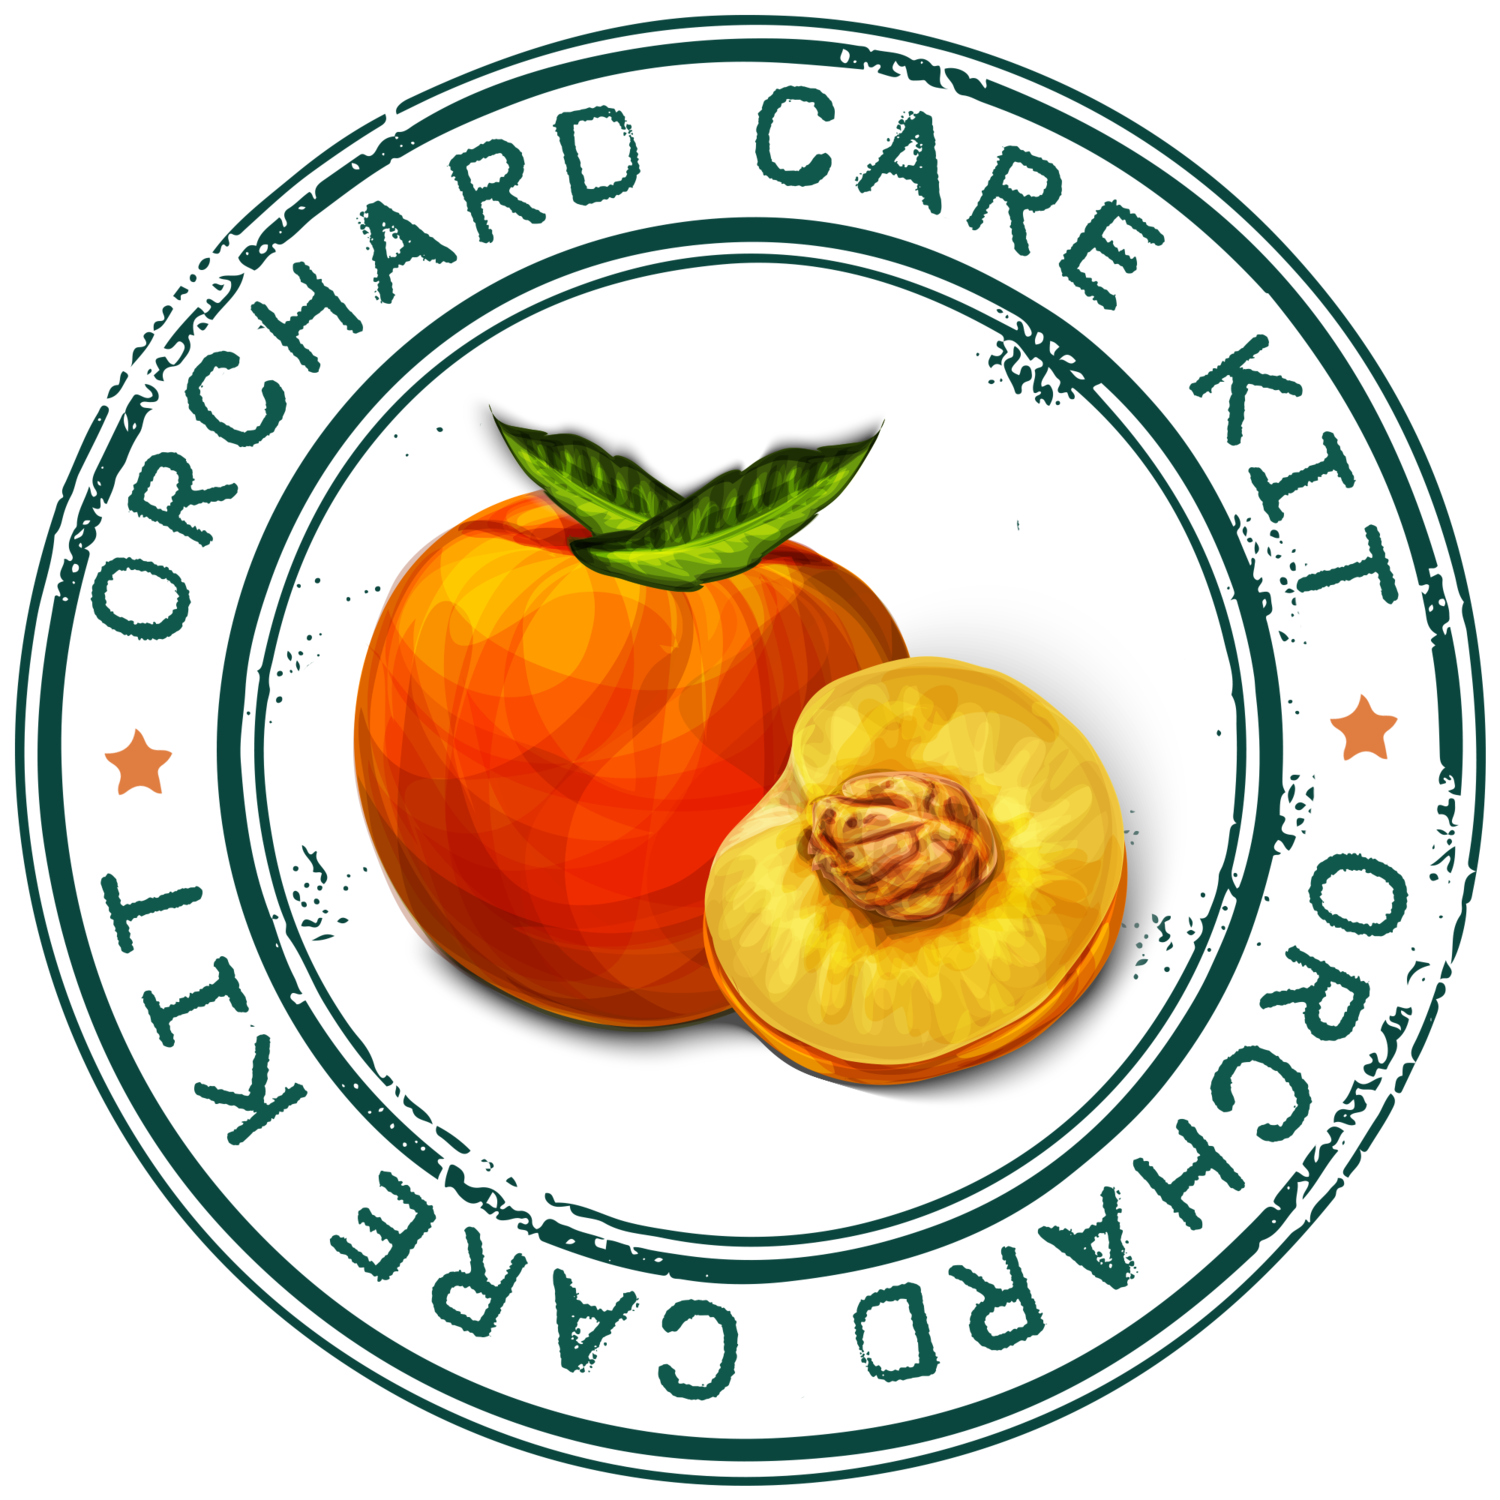 Orchard care kit